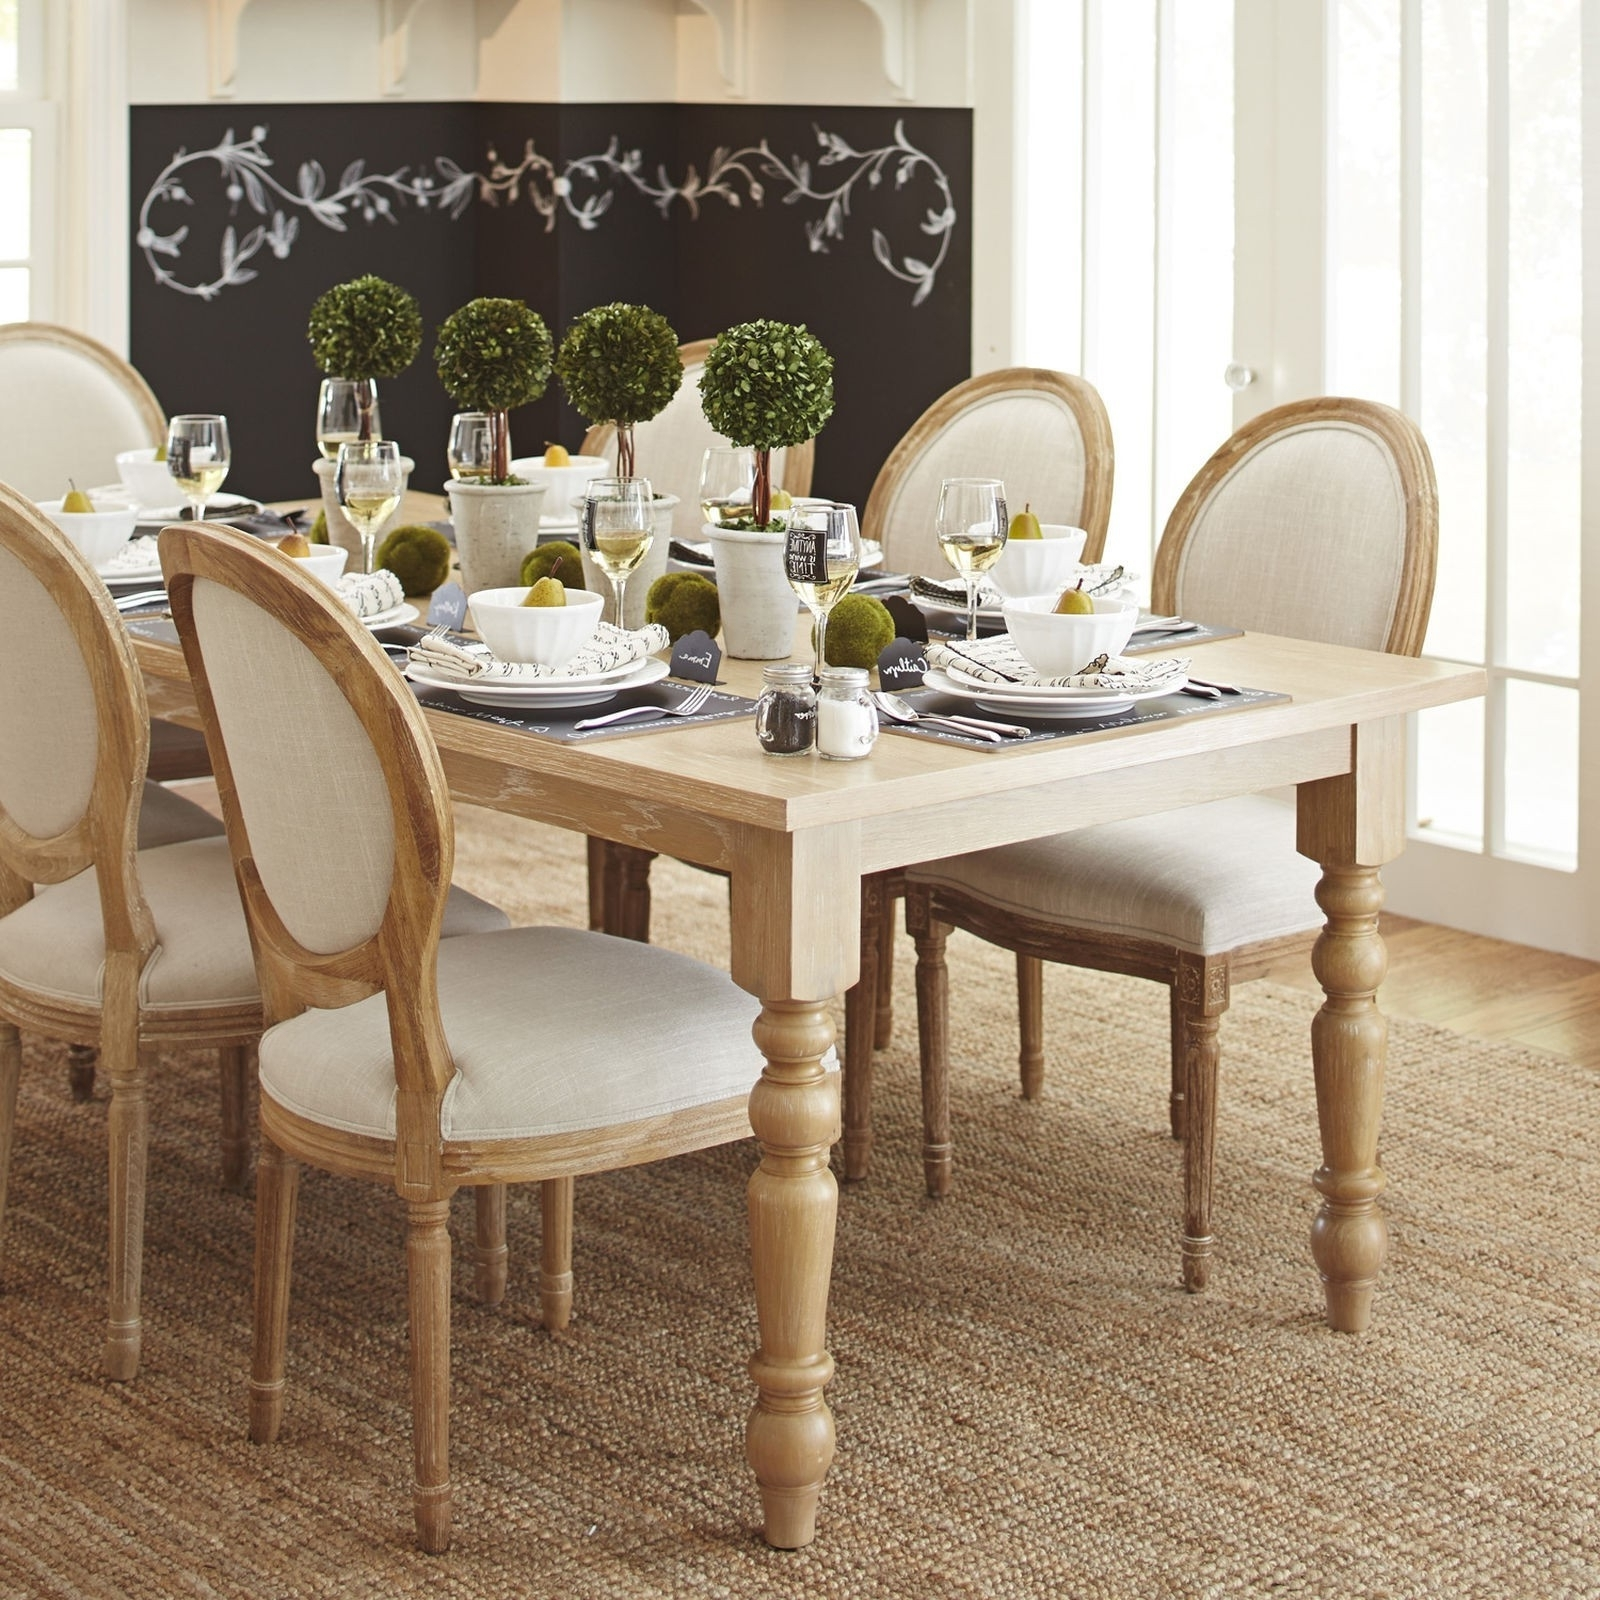 Newest Round French Country Dining Table Fresh Round Dining Room Table With Within French Country Dining Tables (View 19 of 25)